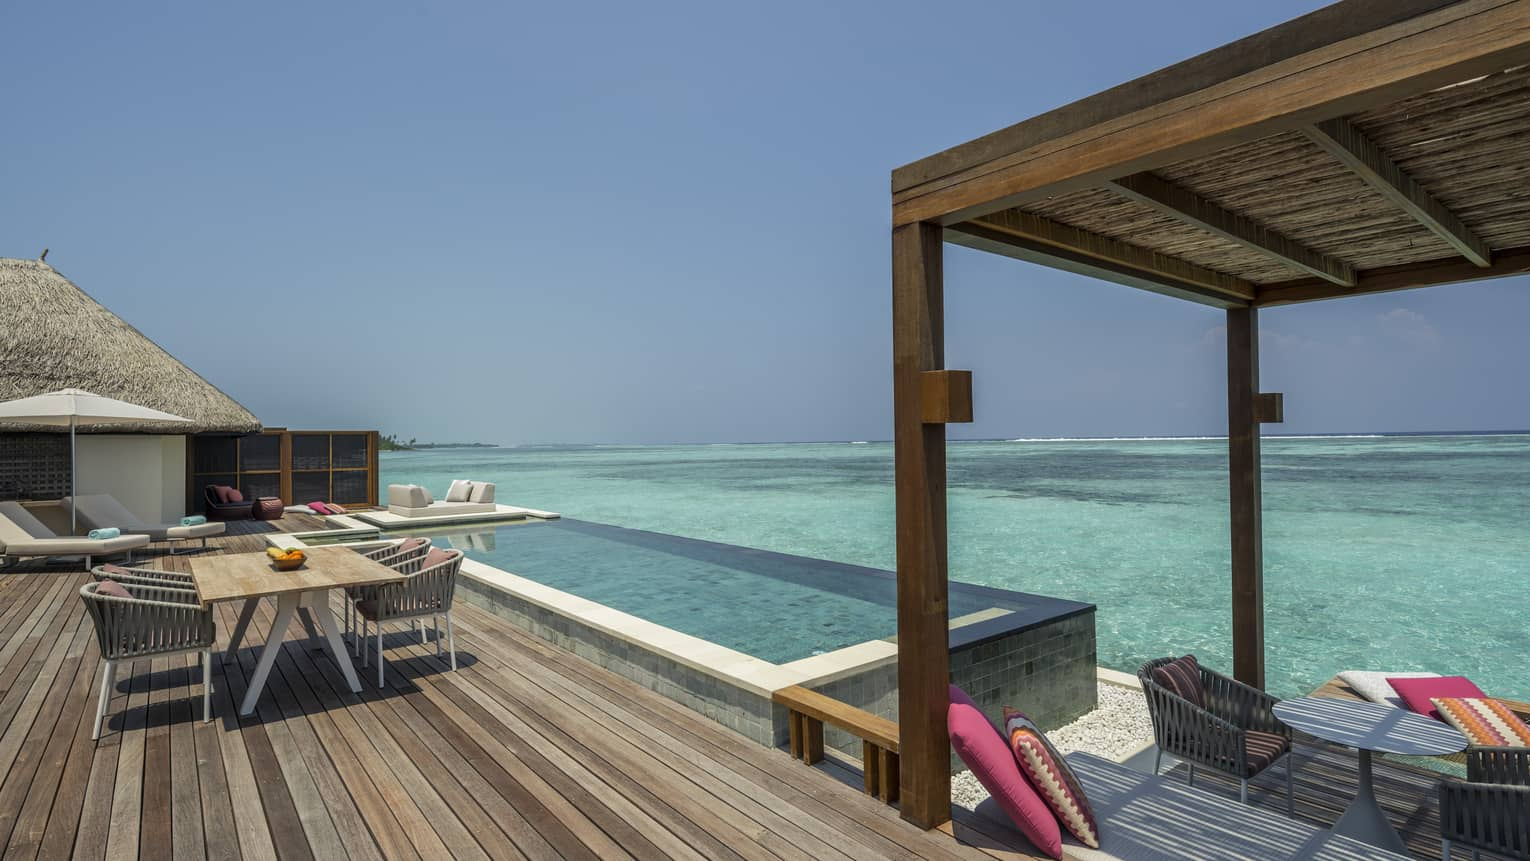 Large wooden deck with dining table and infinity pool overlooking clear turquoise water